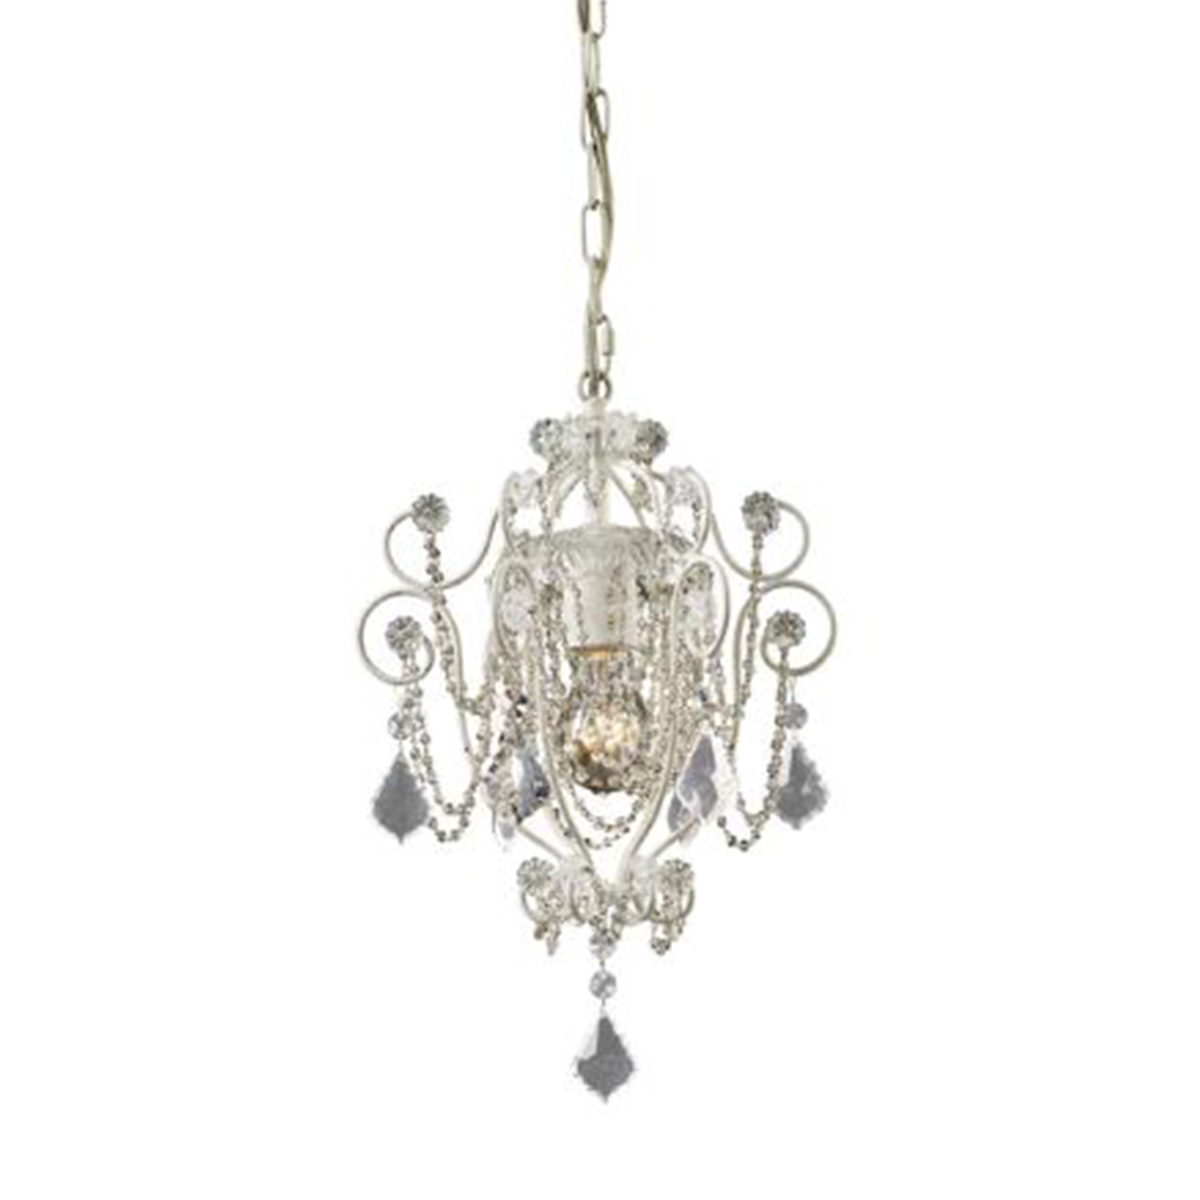 Pottery Barn Octavia Chandelier: Vintage-Inspired Chandelier Finds For Serious Entryway